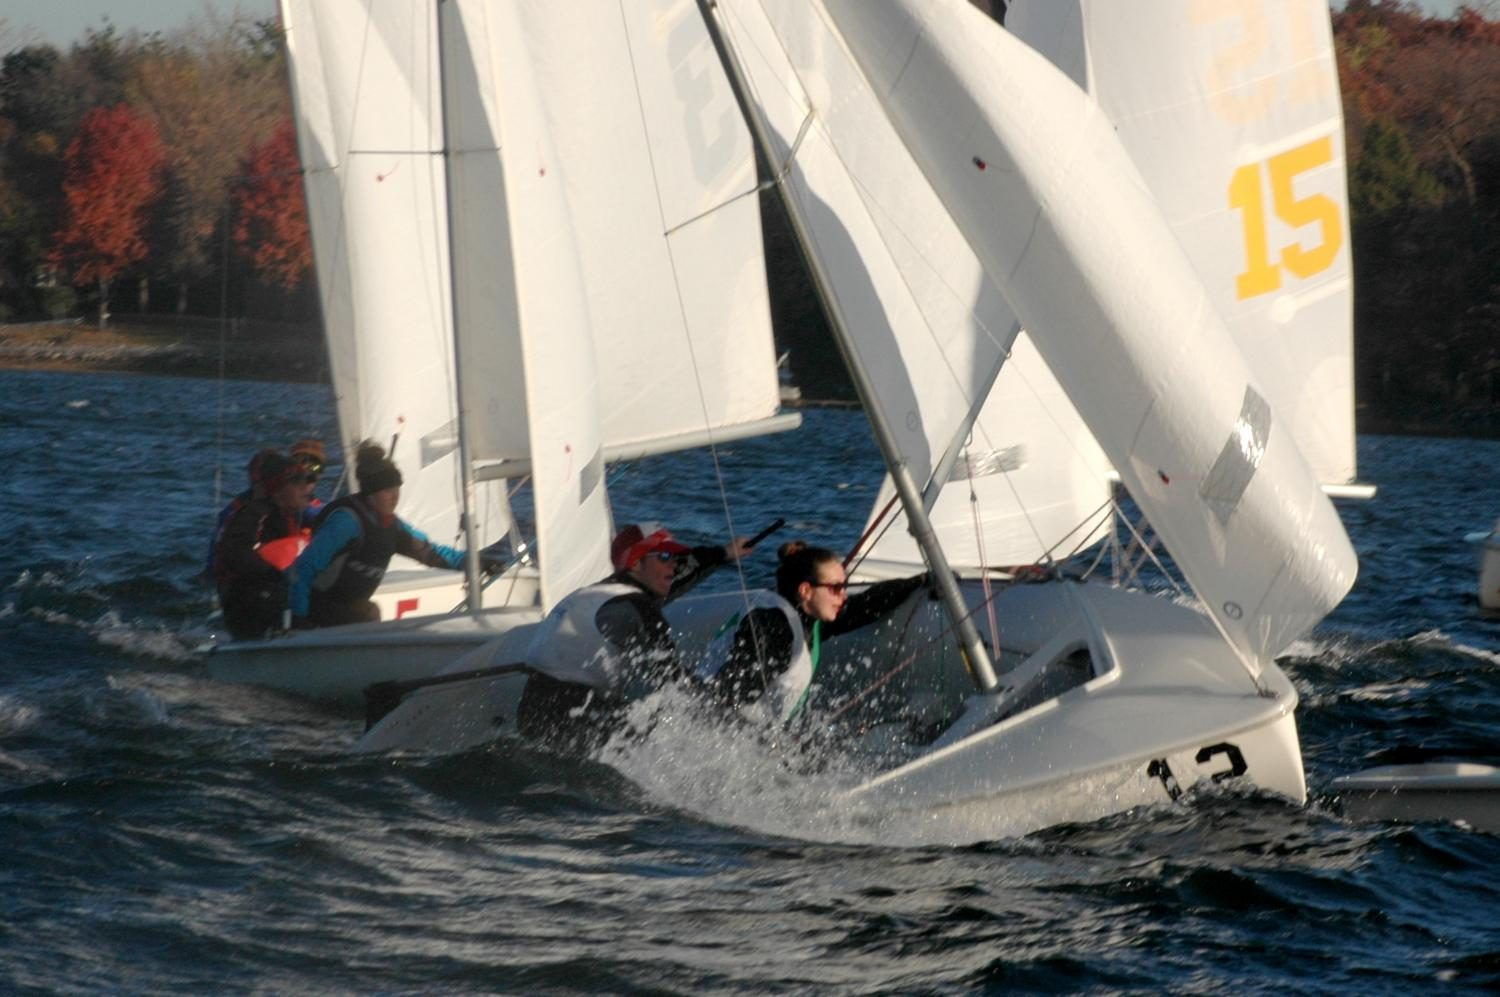 Senior+Jack+Indritz+sails+at+a+regatta+in+a+two-person+boat.+%22Once+you+race+for+a+while+with+your+crew%2C+you+don%E2%80%99t+really+need+to+communicate+anymore+because+you%E2%80%99ve+practiced+so+much+that+you+know+what+the+other+person+is+gonna+do+and+when%2C%22+Indritz+said.